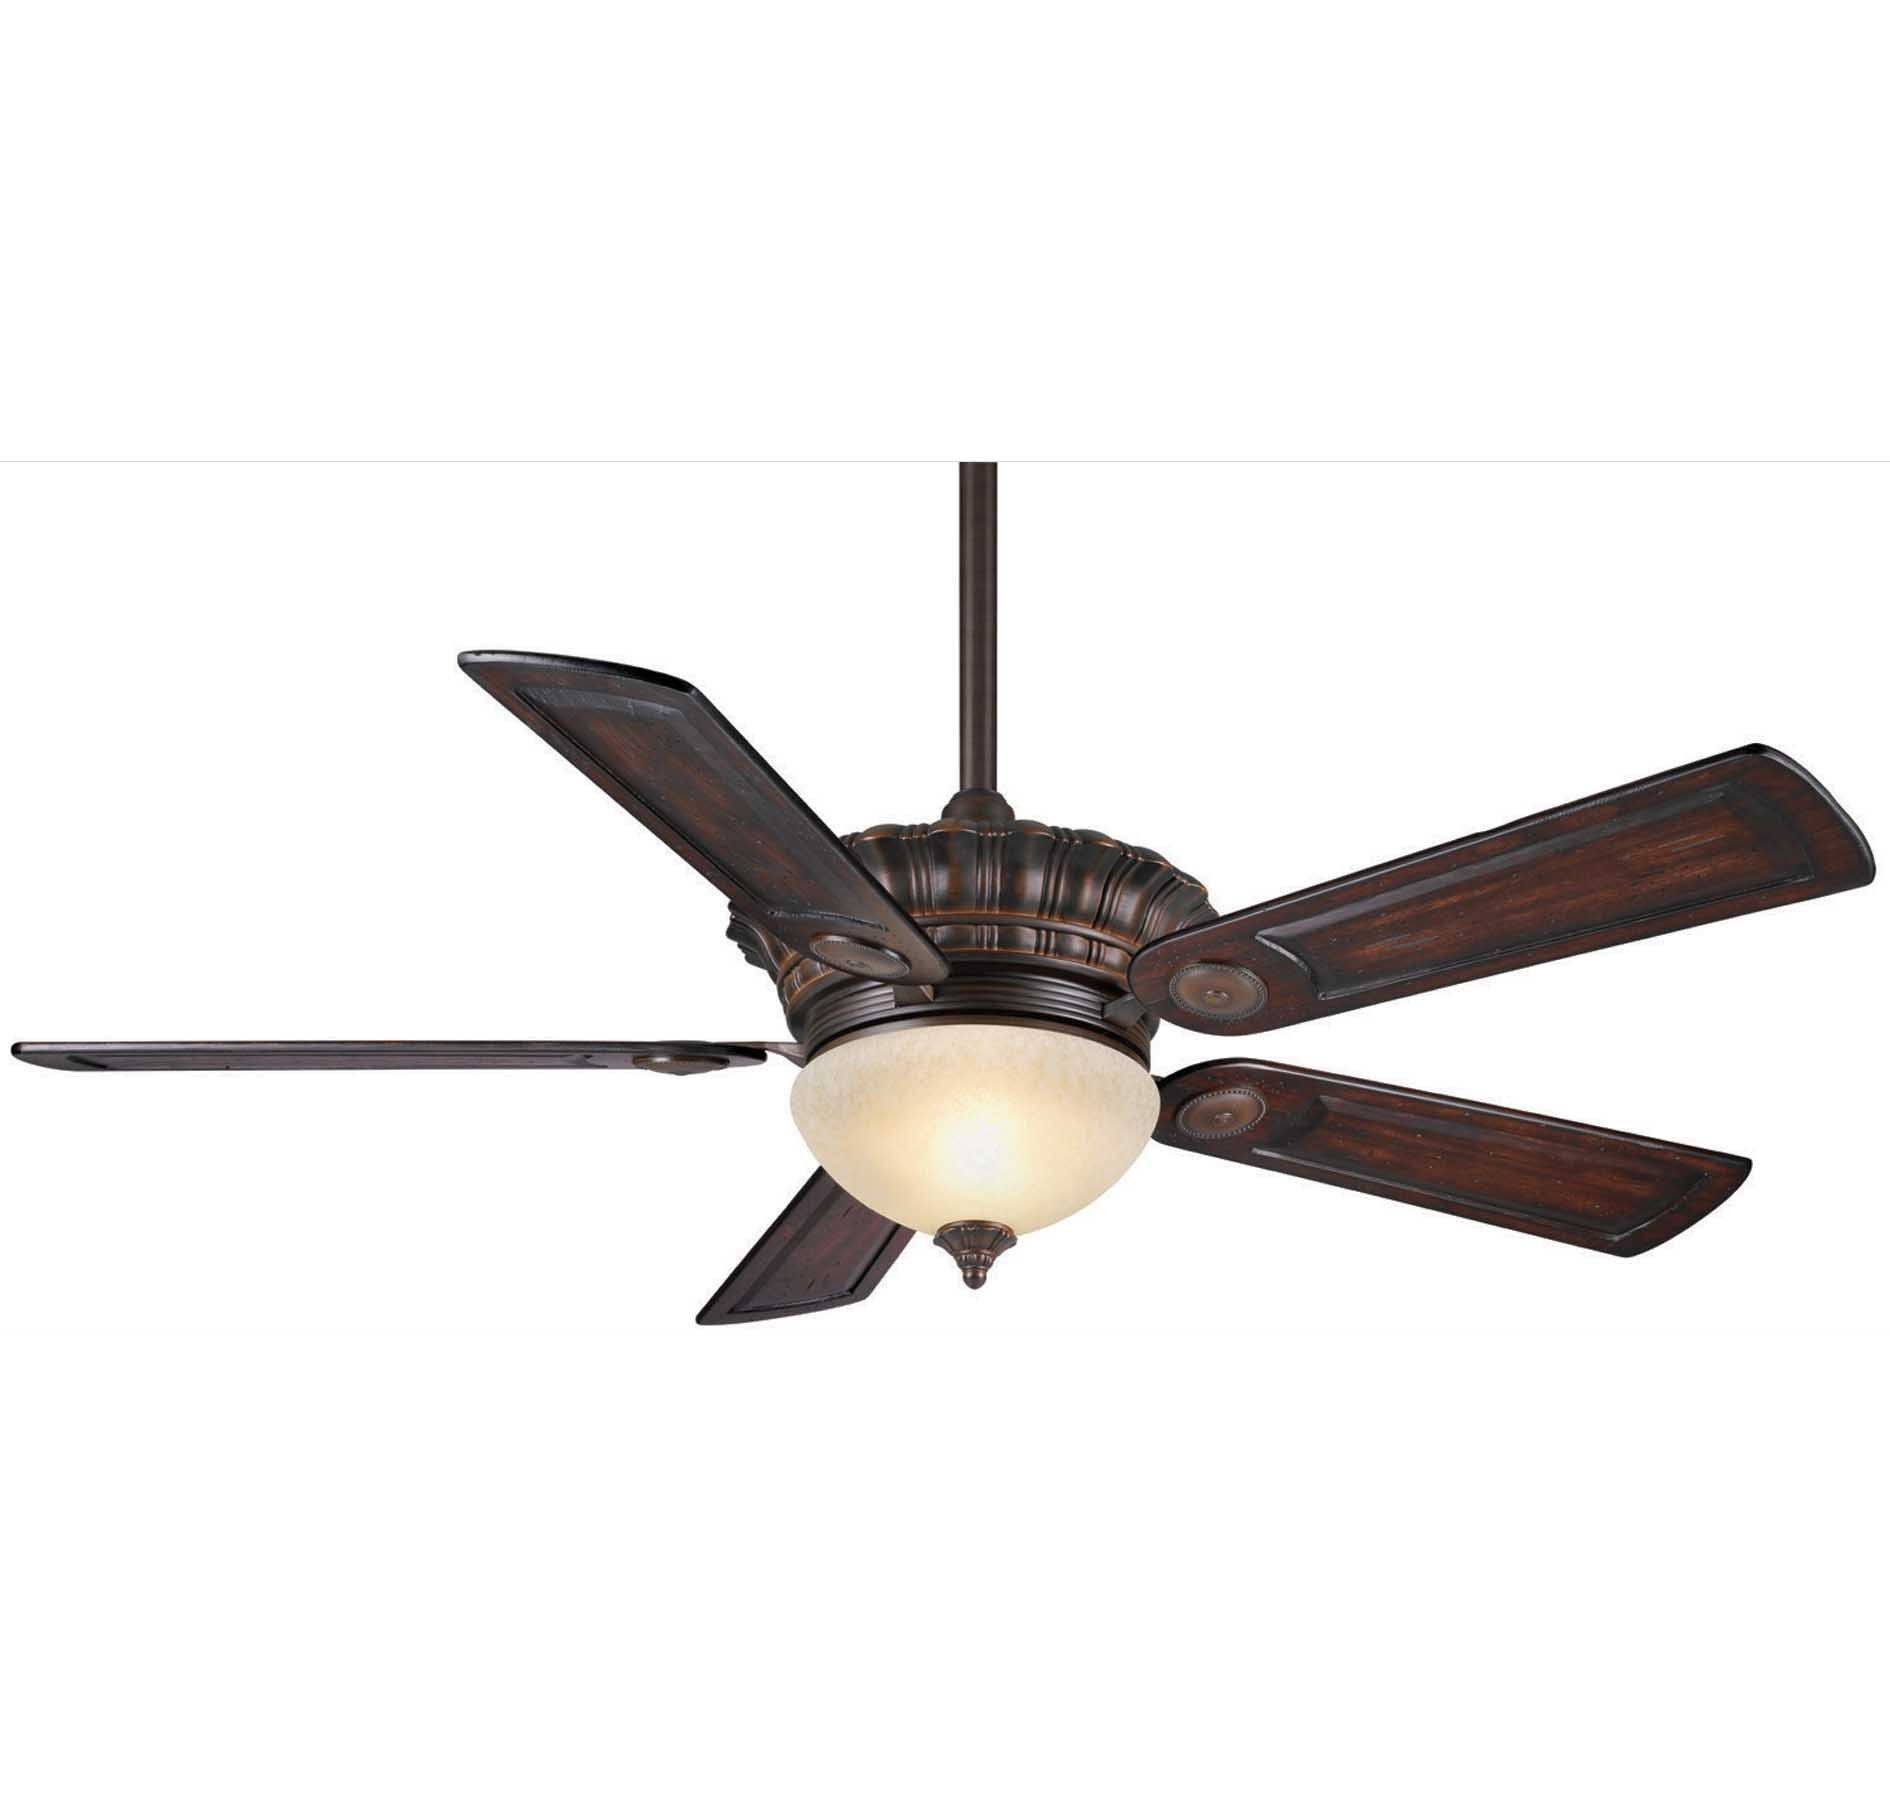 Savoy House Fan Love This For My House Vintage Ceiling Fans Antique Ceiling Fans Ceiling Fan